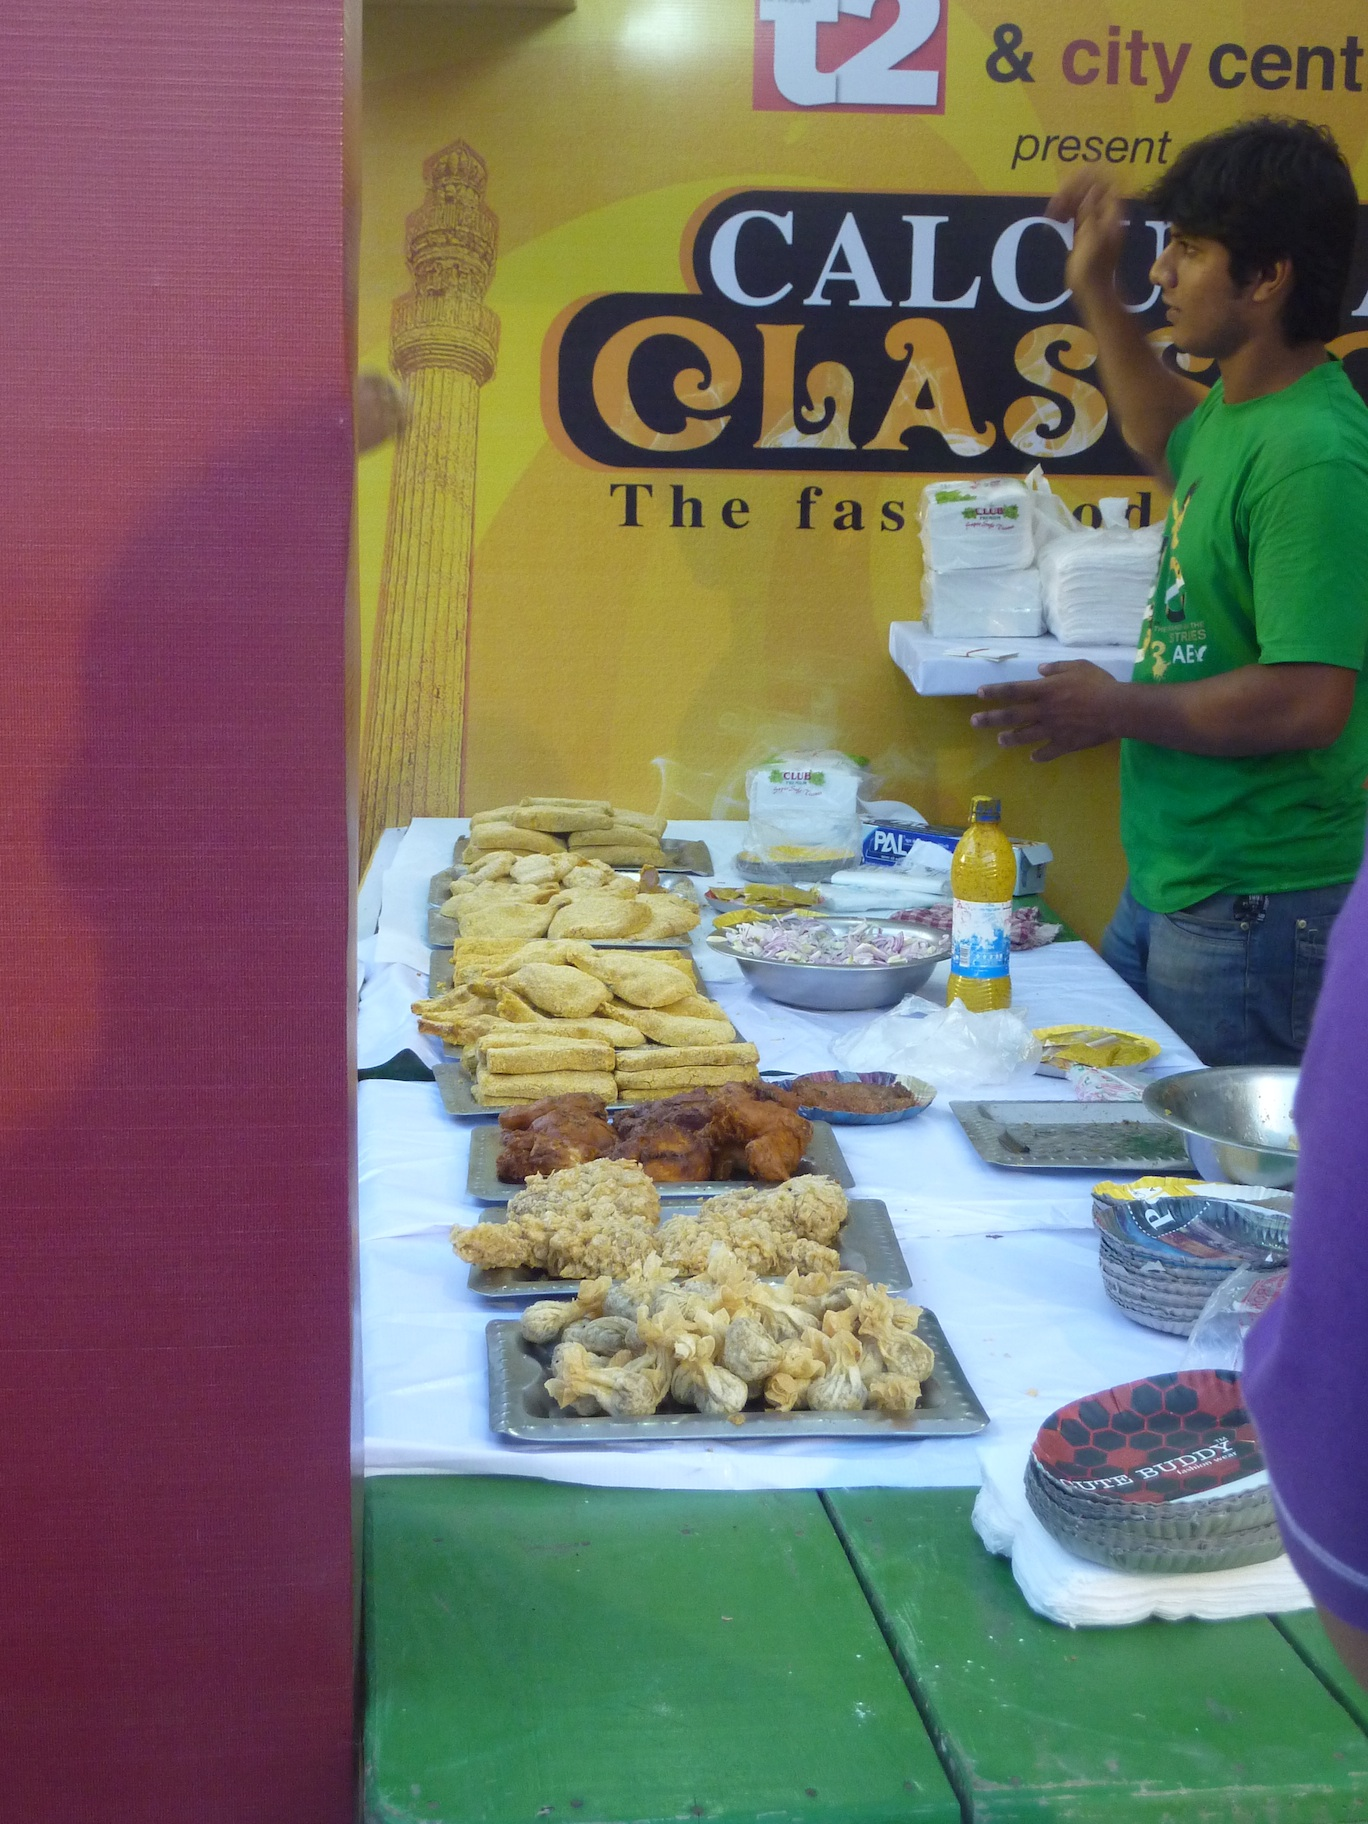 Caption: Calcutta food festival, Credit: Sandip Roy